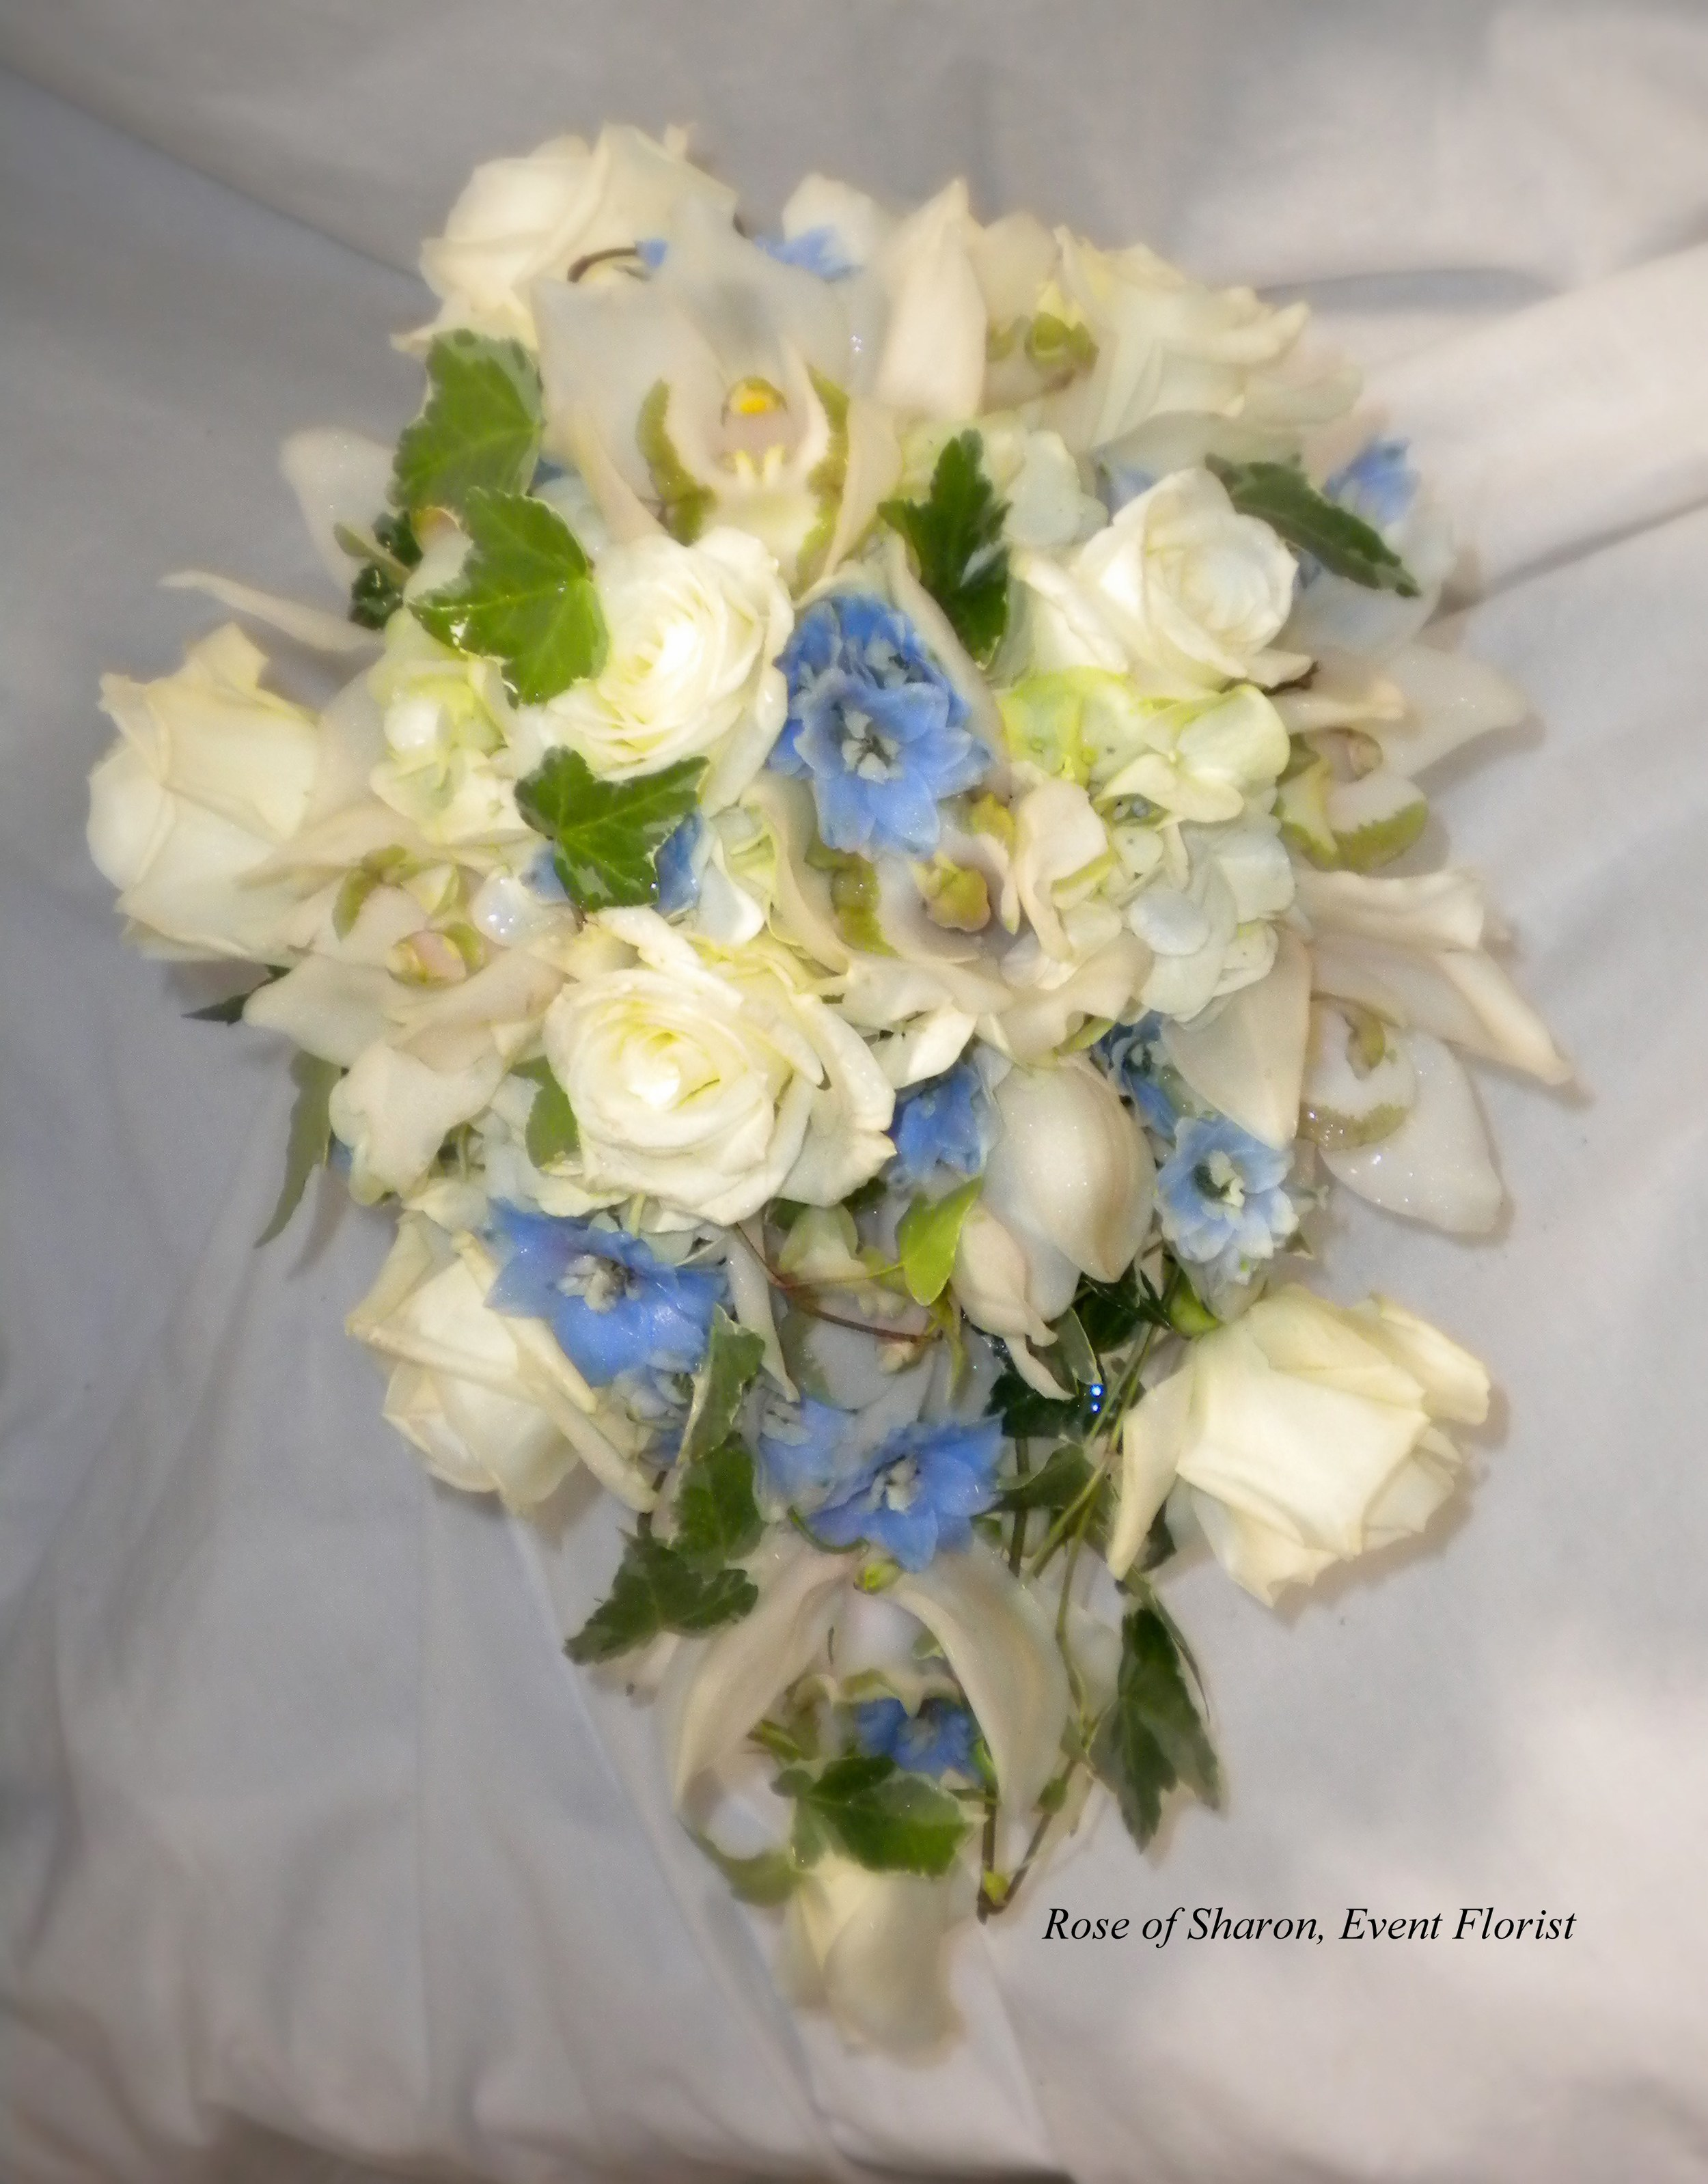 Blue and Cream Teardrop Bouquet with Roses, Orchids and Delphinium. Rose of Sharon Floral Designs